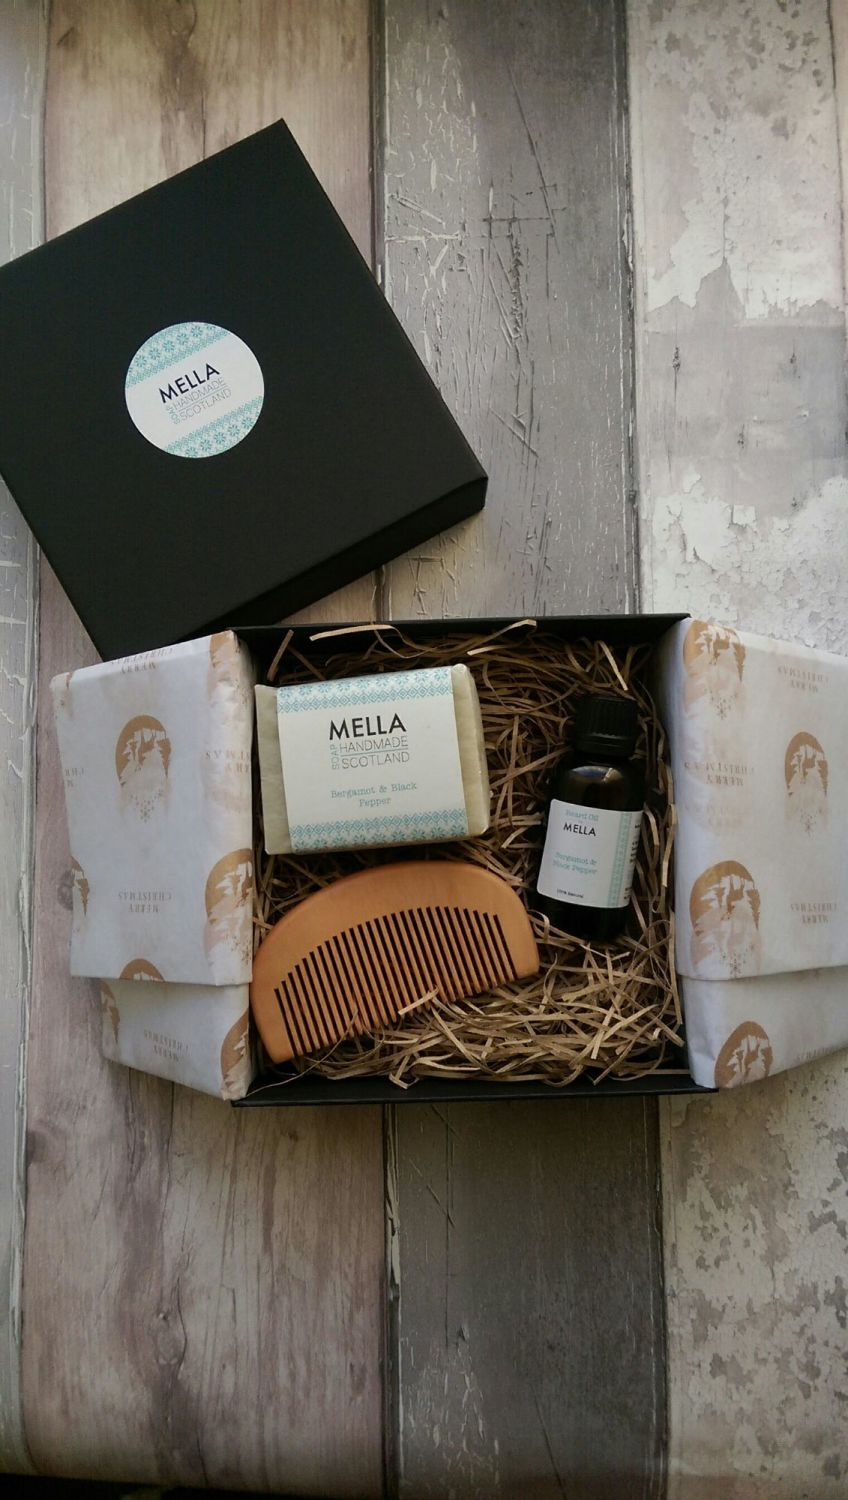 Mella Beard Oil Gift Box